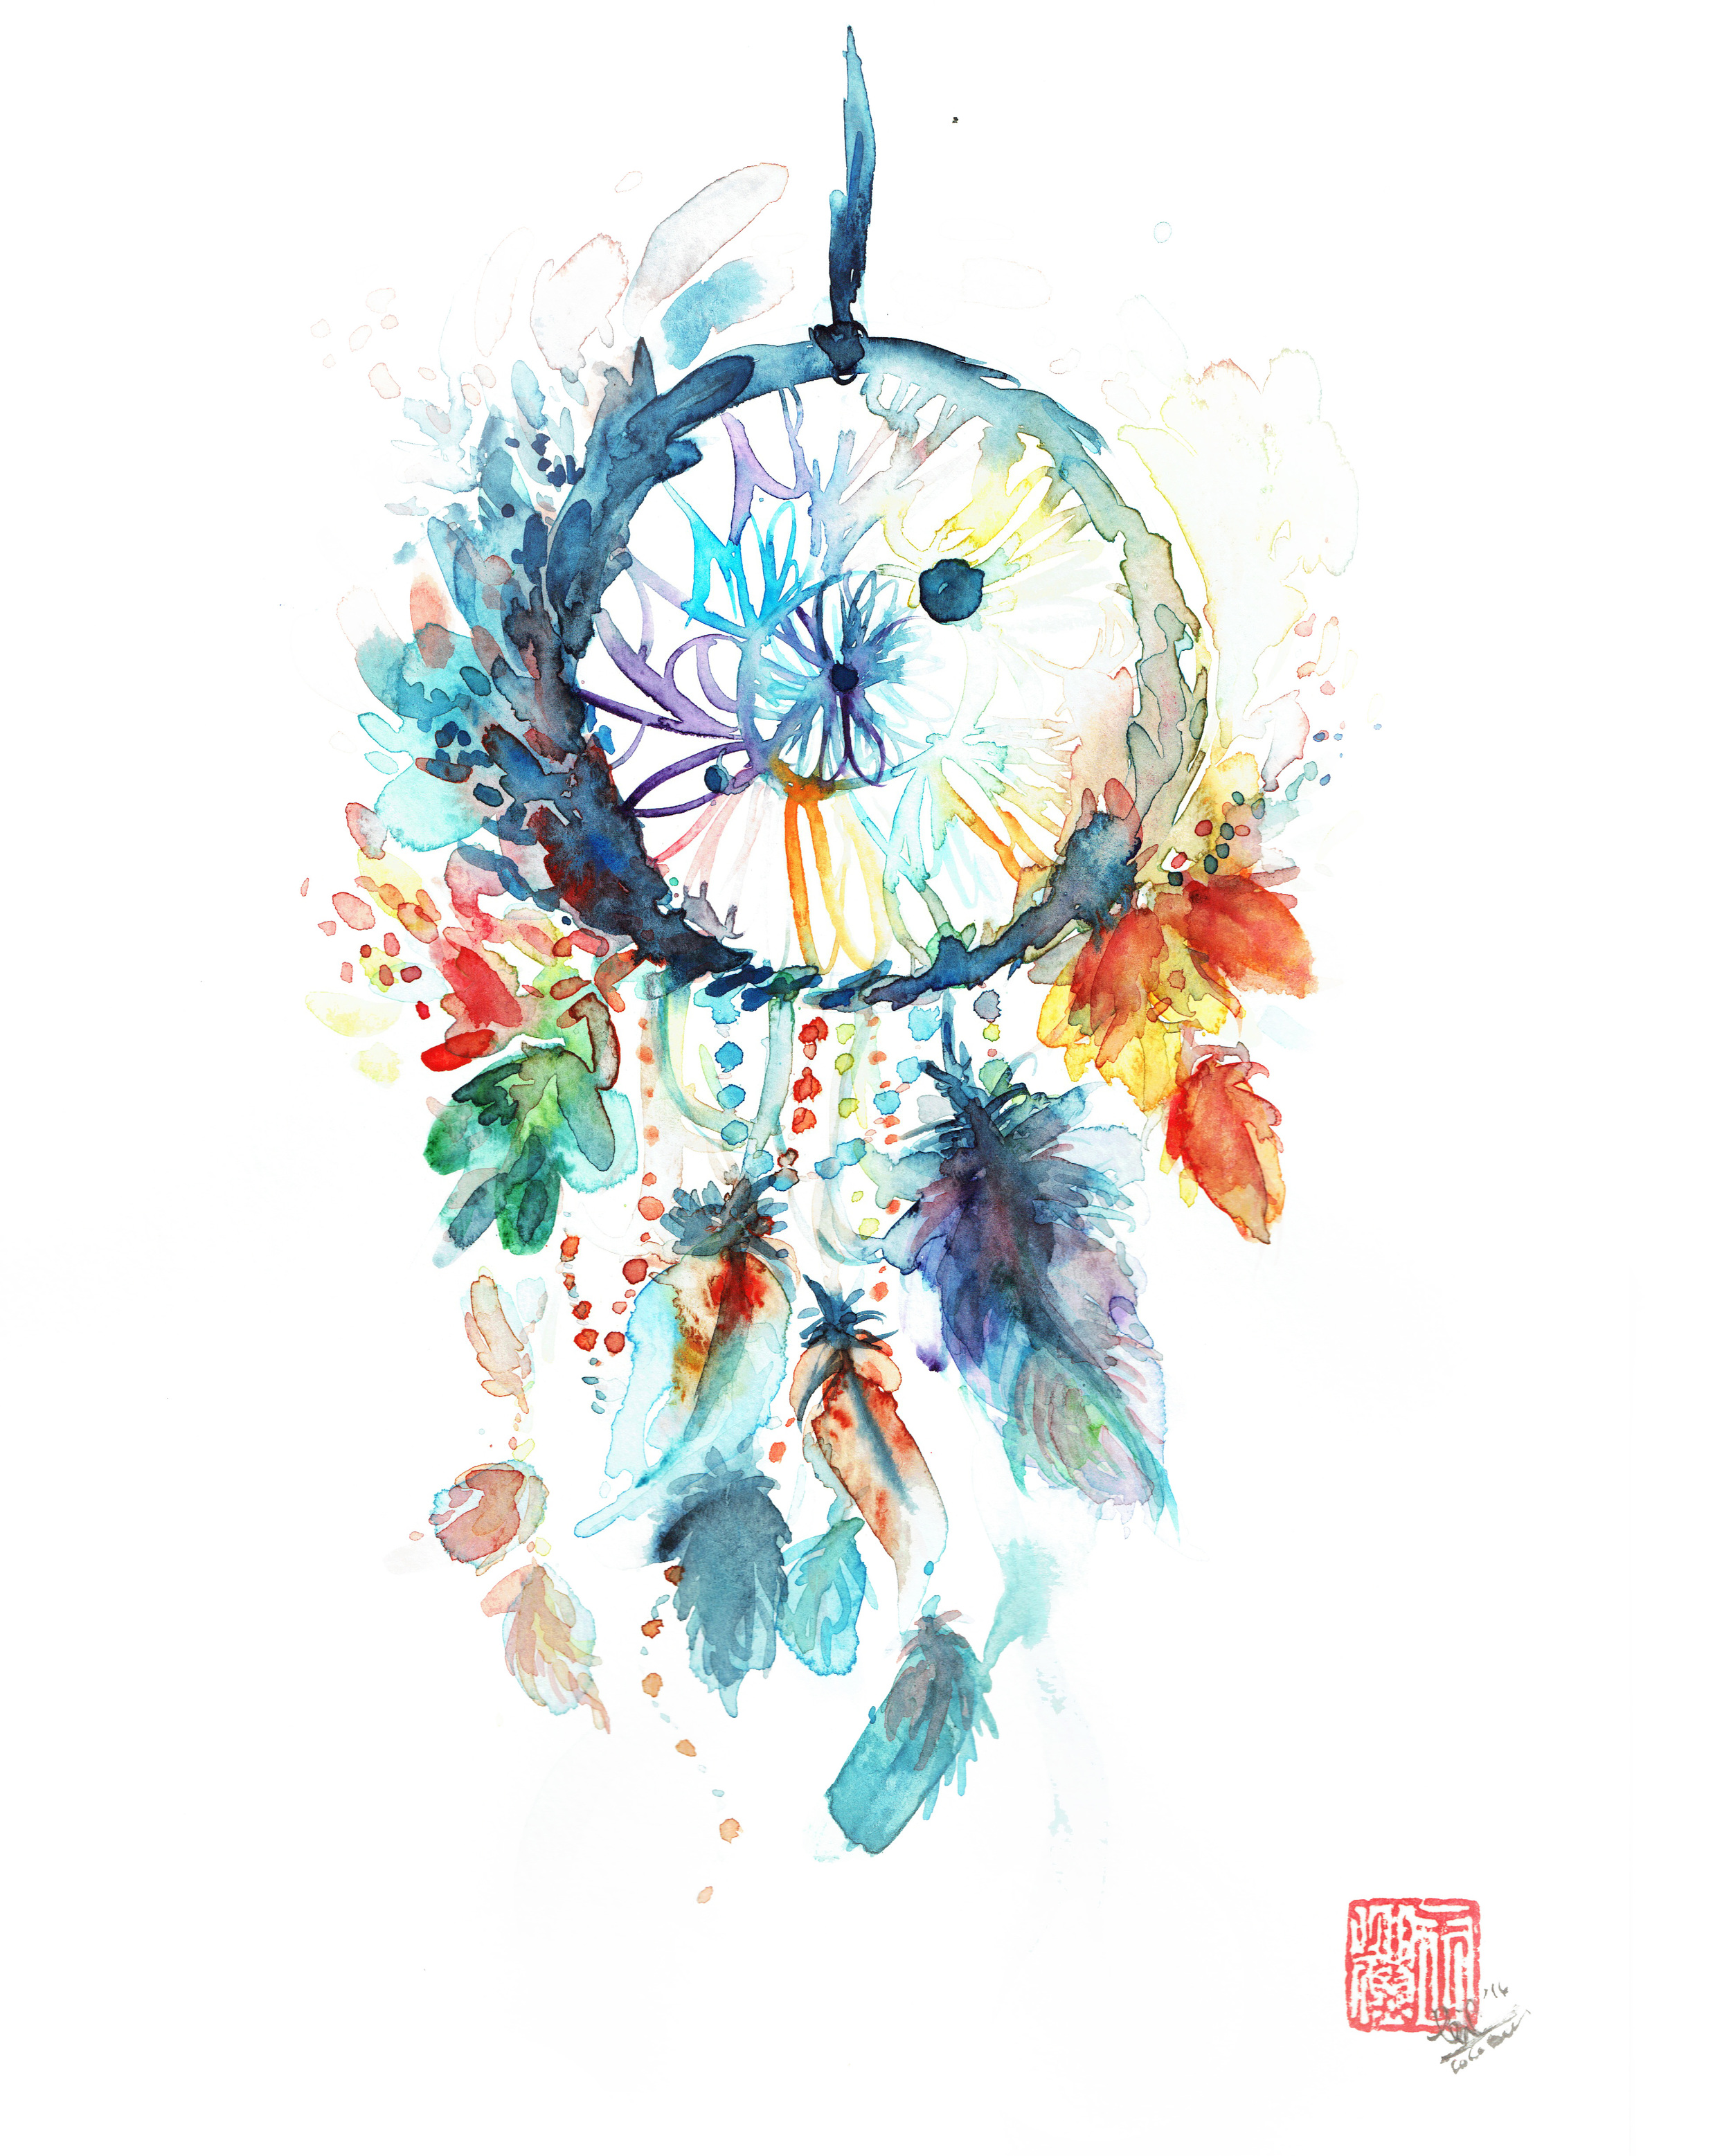 Dreamcatcher, Watercolor on Cold Press 140lbs ( February, 2016)